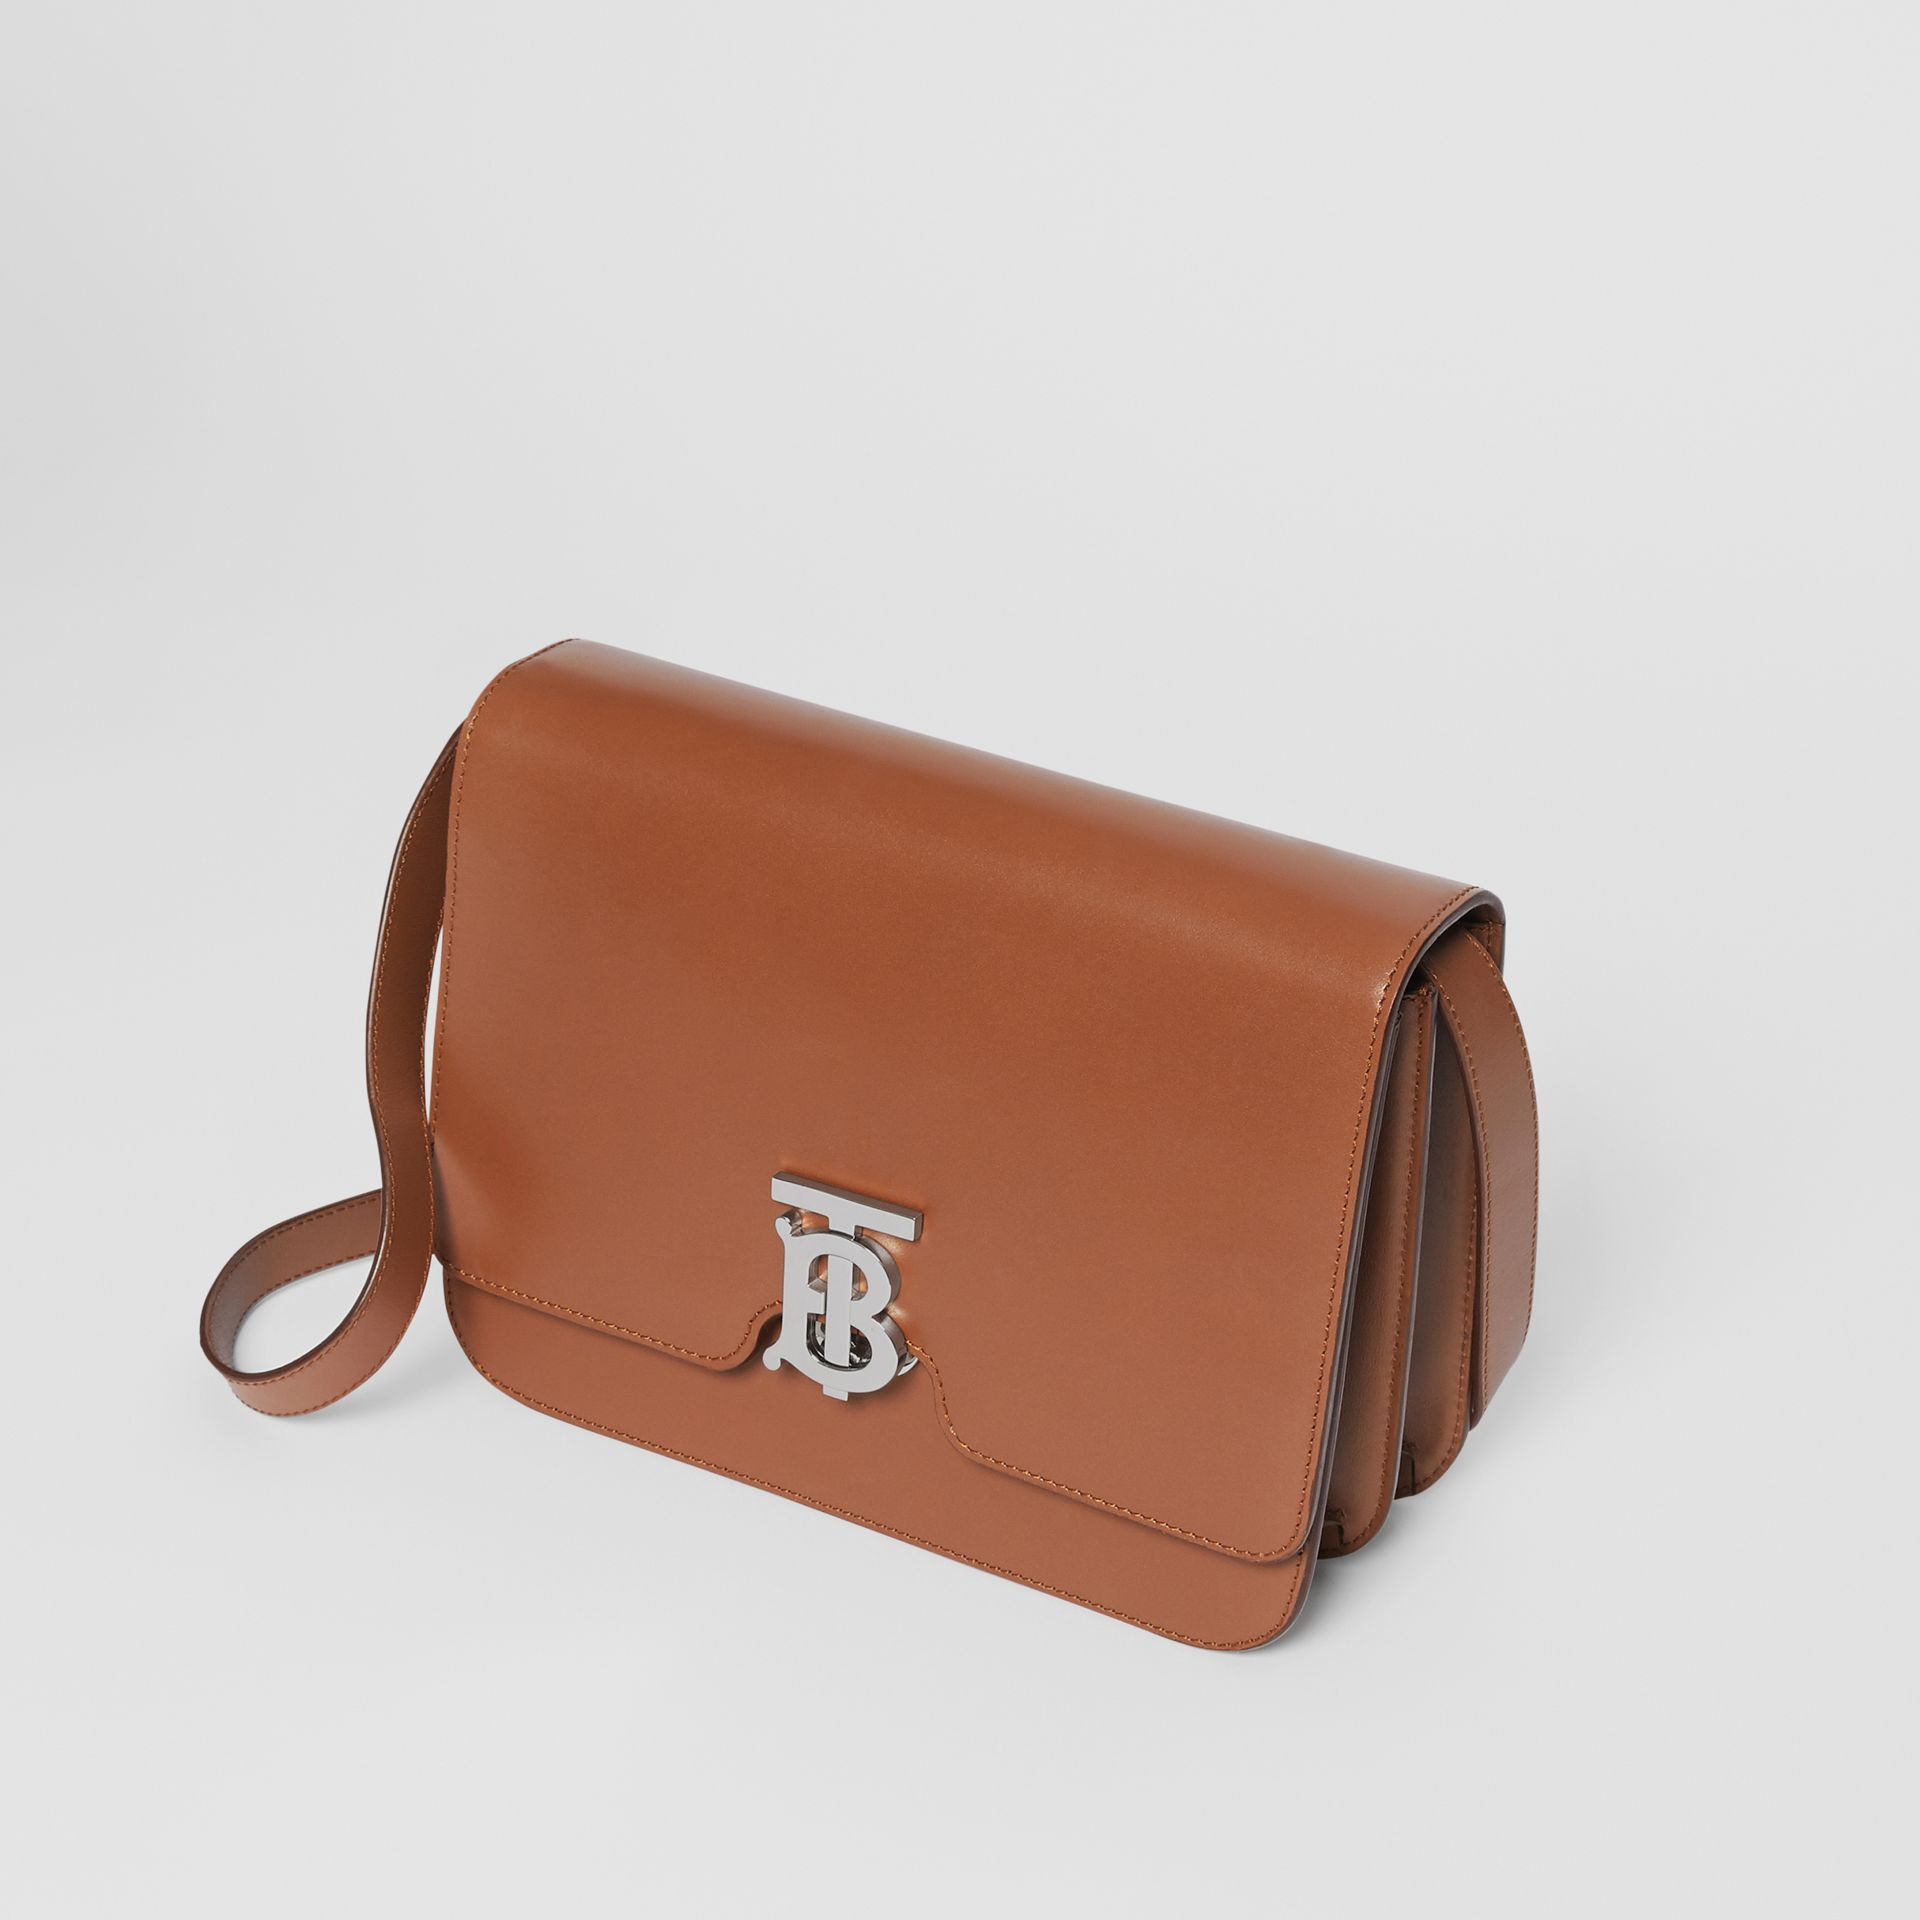 Medium Leather TB Bag in Malt Brown - Women | Burberry - gallery image 3